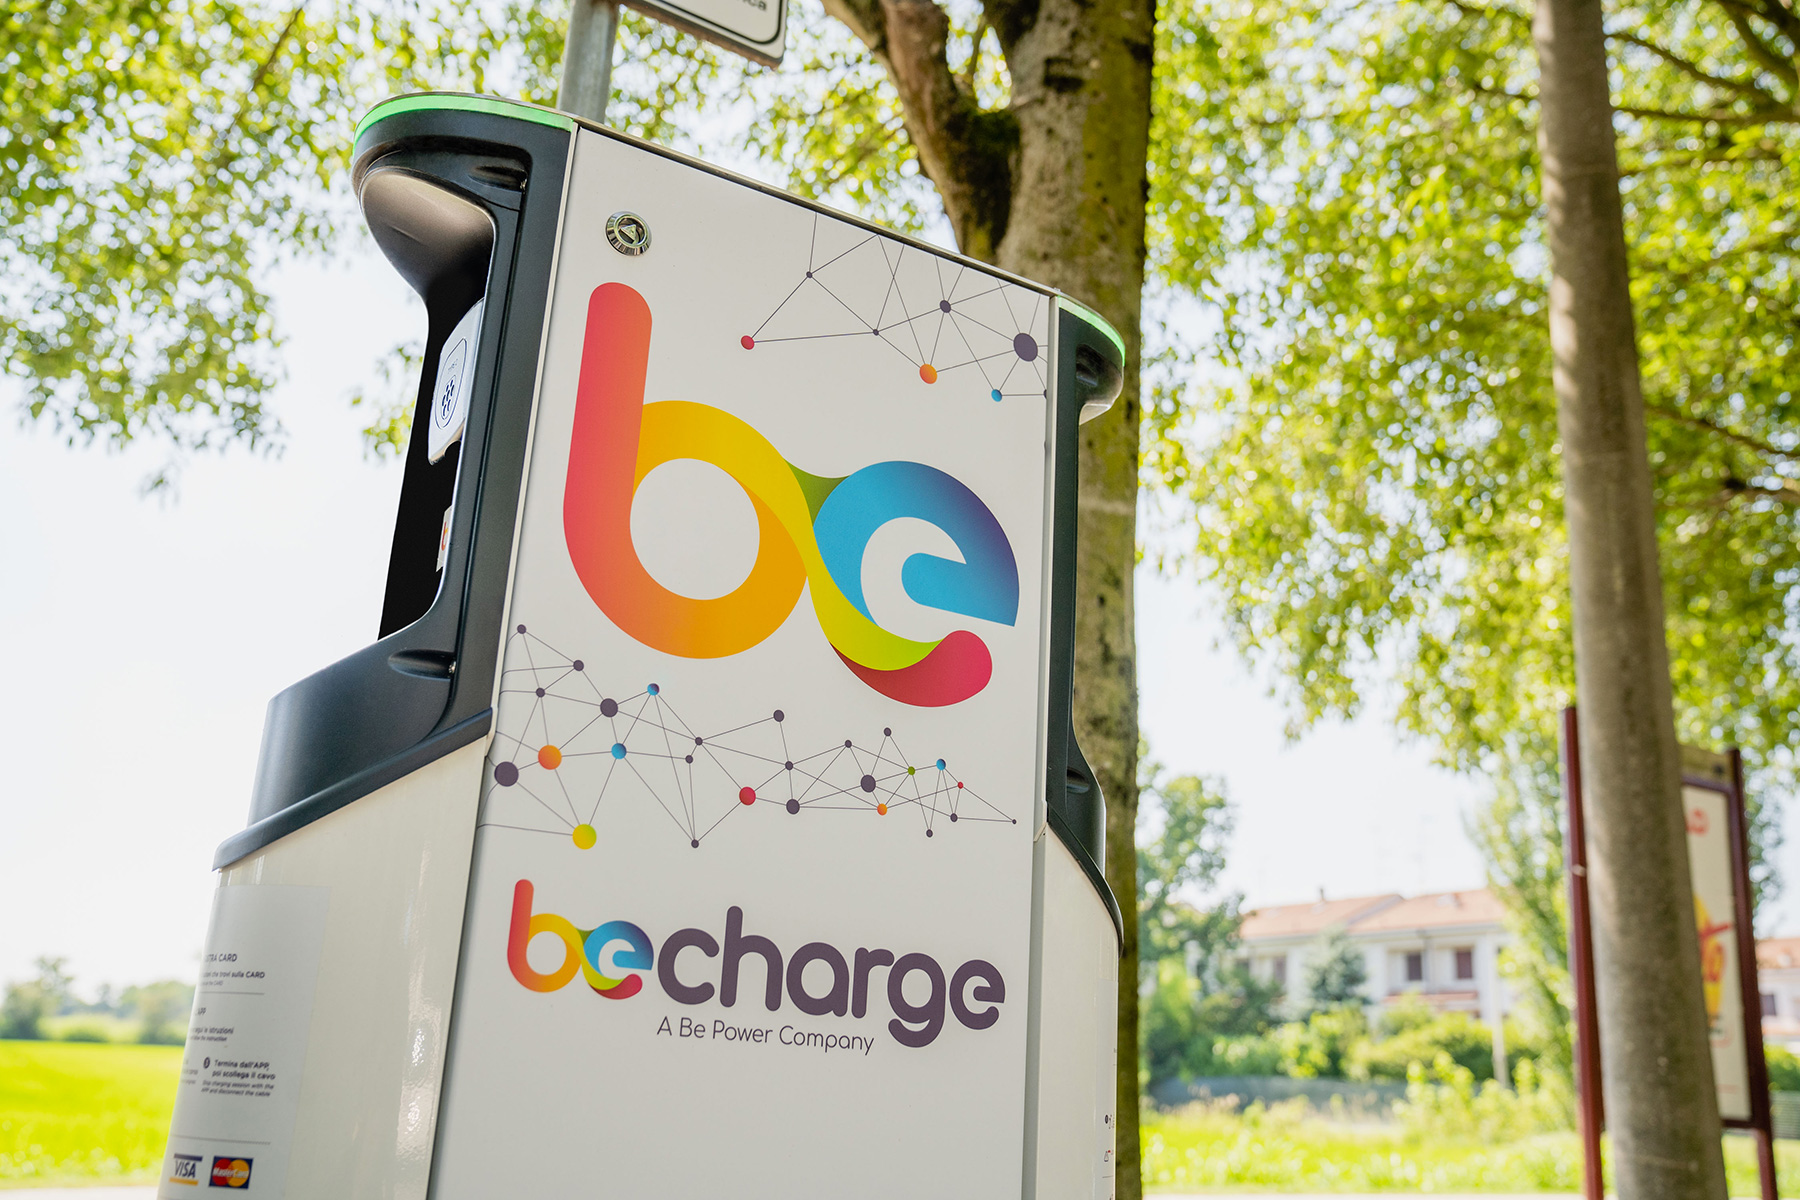 Le colonnine di Be Charge